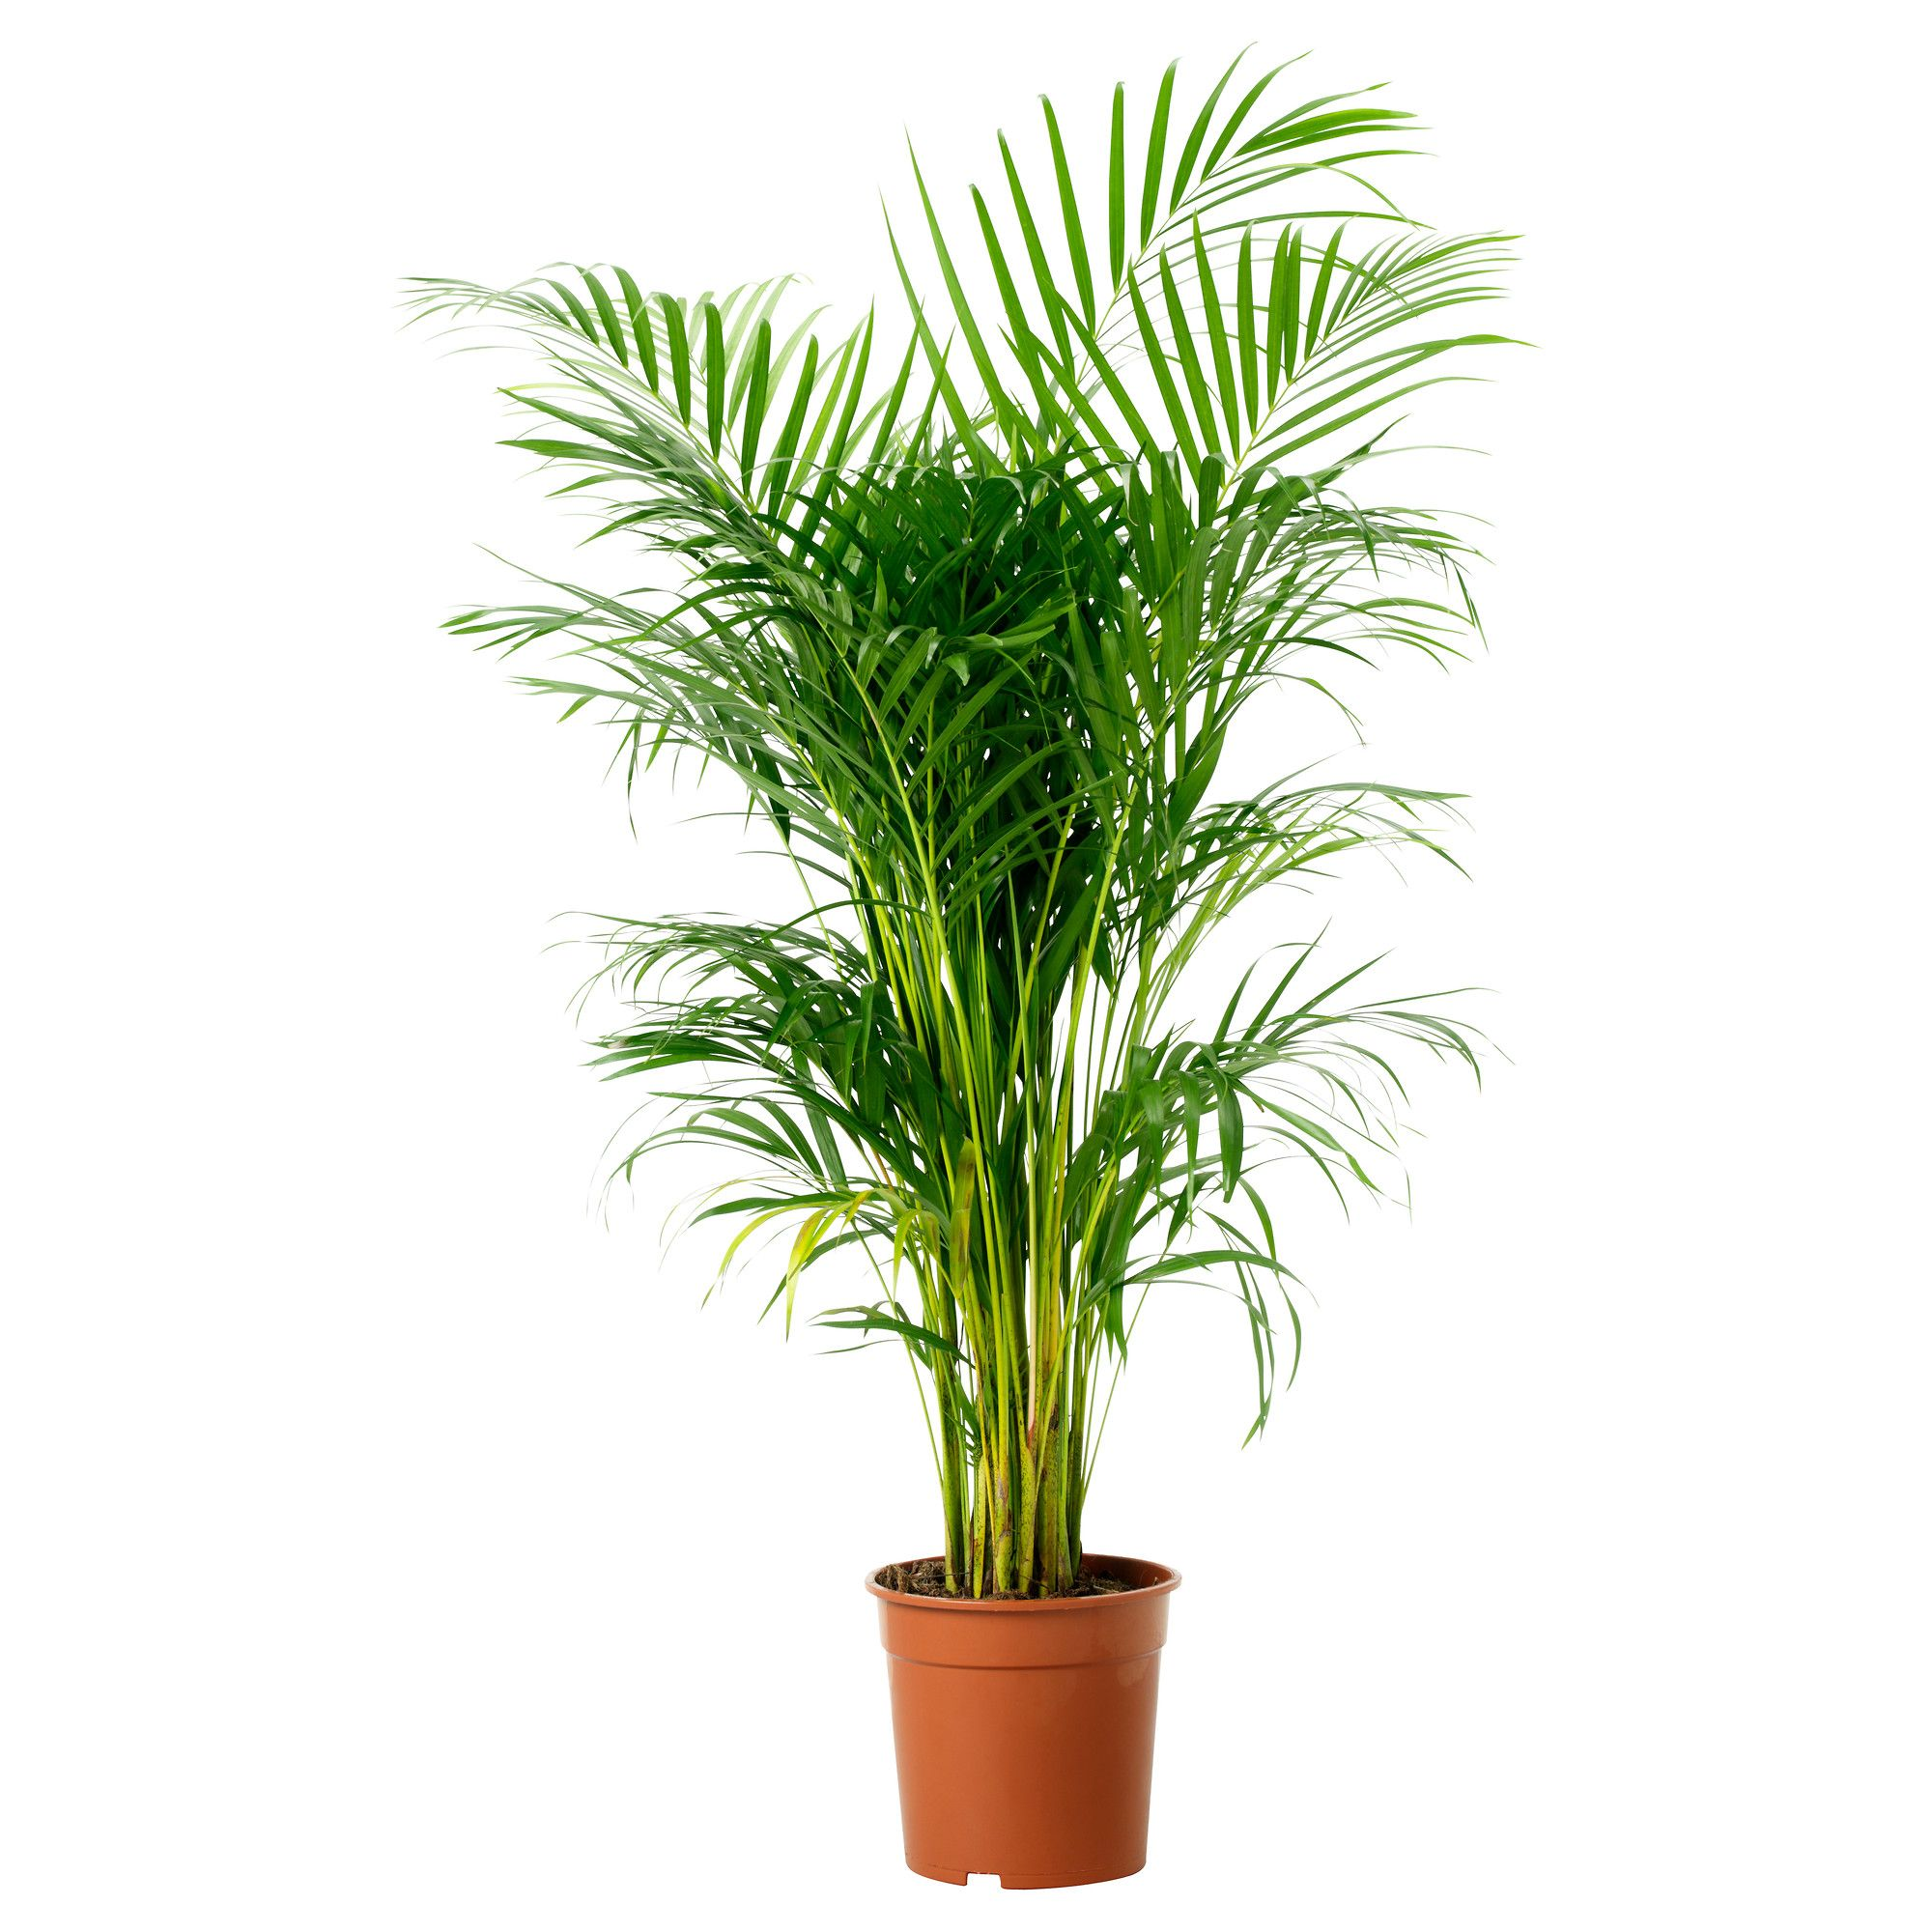 Ikea Chrysalidocarpus Lutescens Plante En Pot: plantes decoratives exterieur